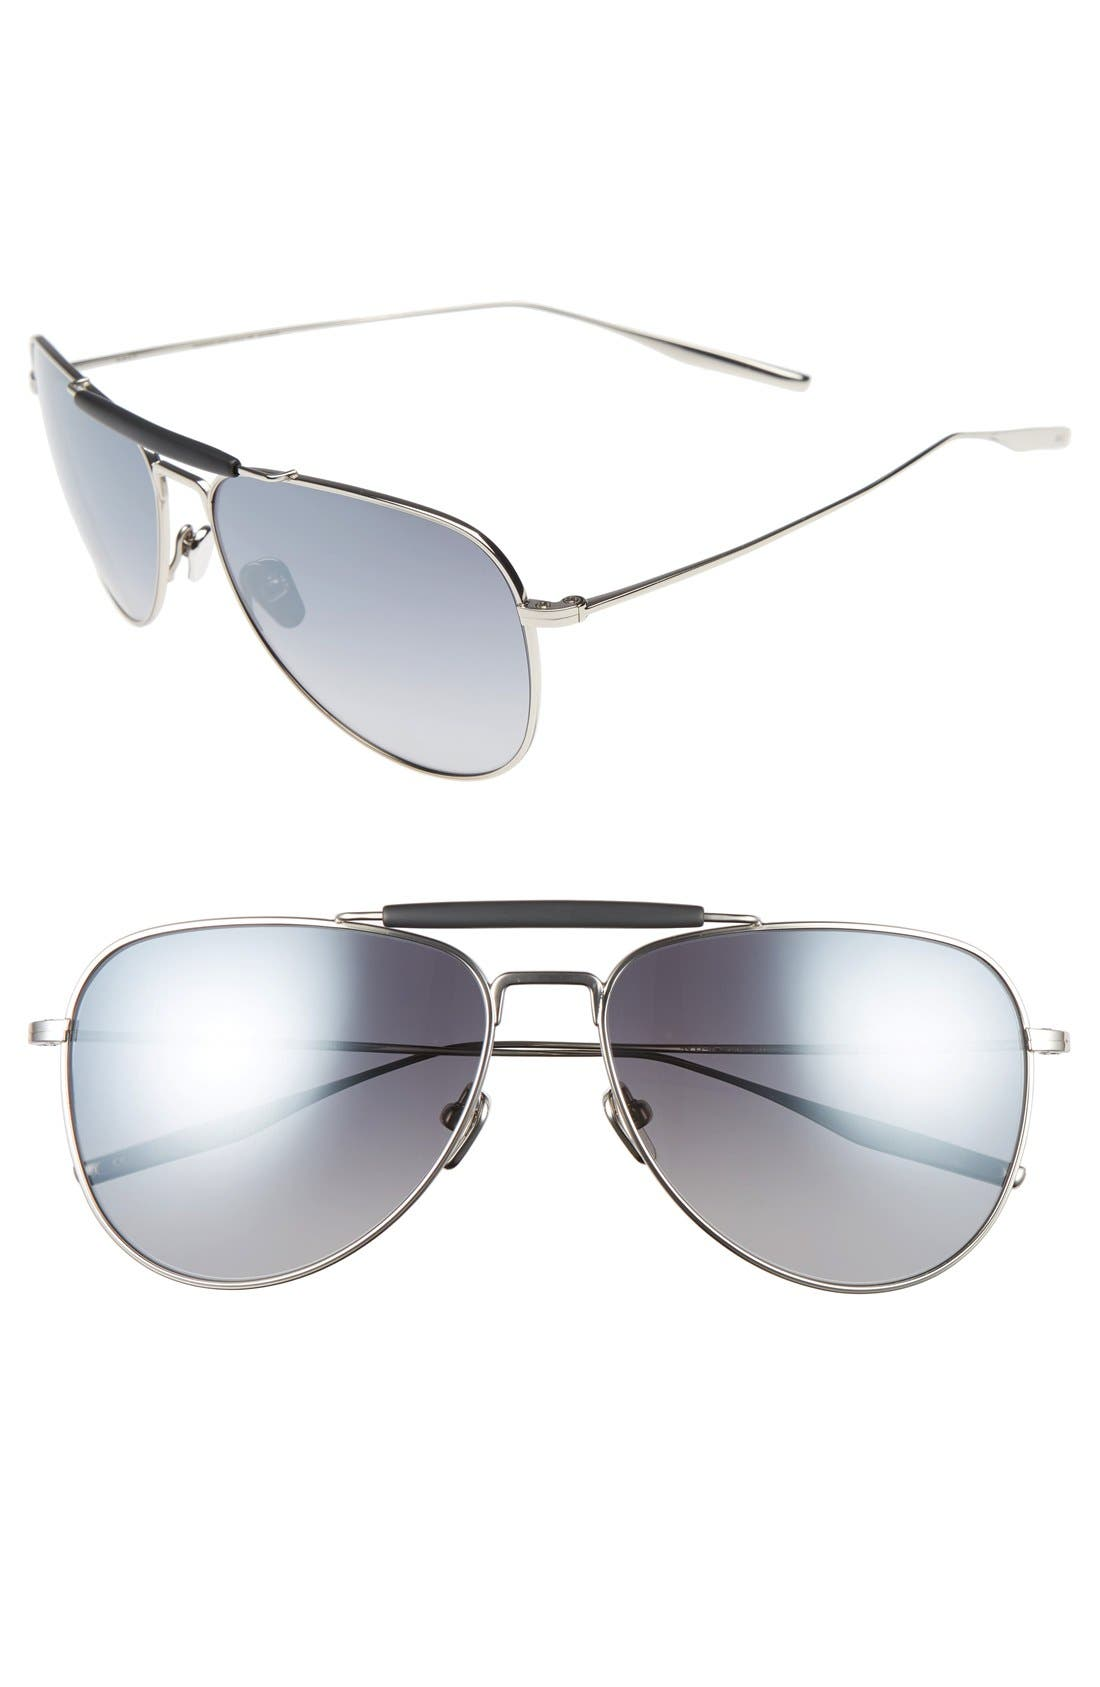 Striker 59mm Aviator Sunglasses,                             Main thumbnail 1, color,                             Traditional Silver